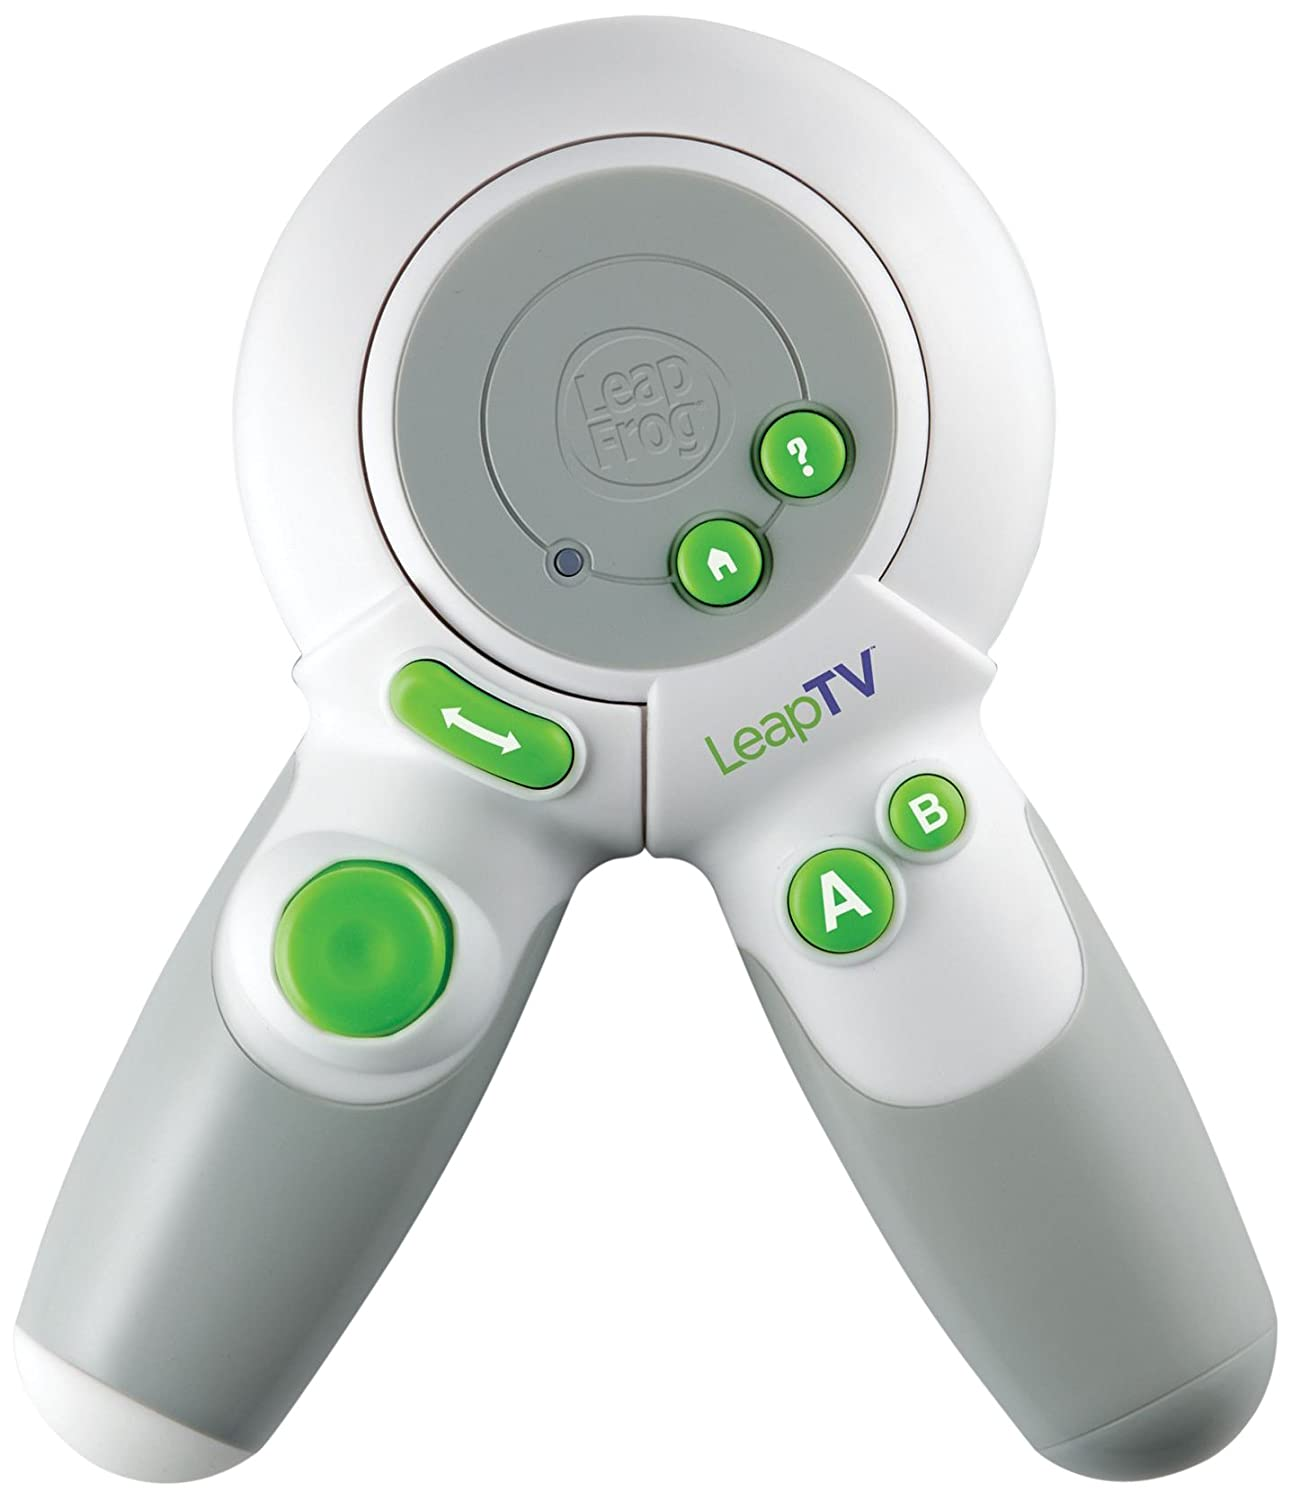 LeapFrog Leaptv controller Spear, Multi Color low price